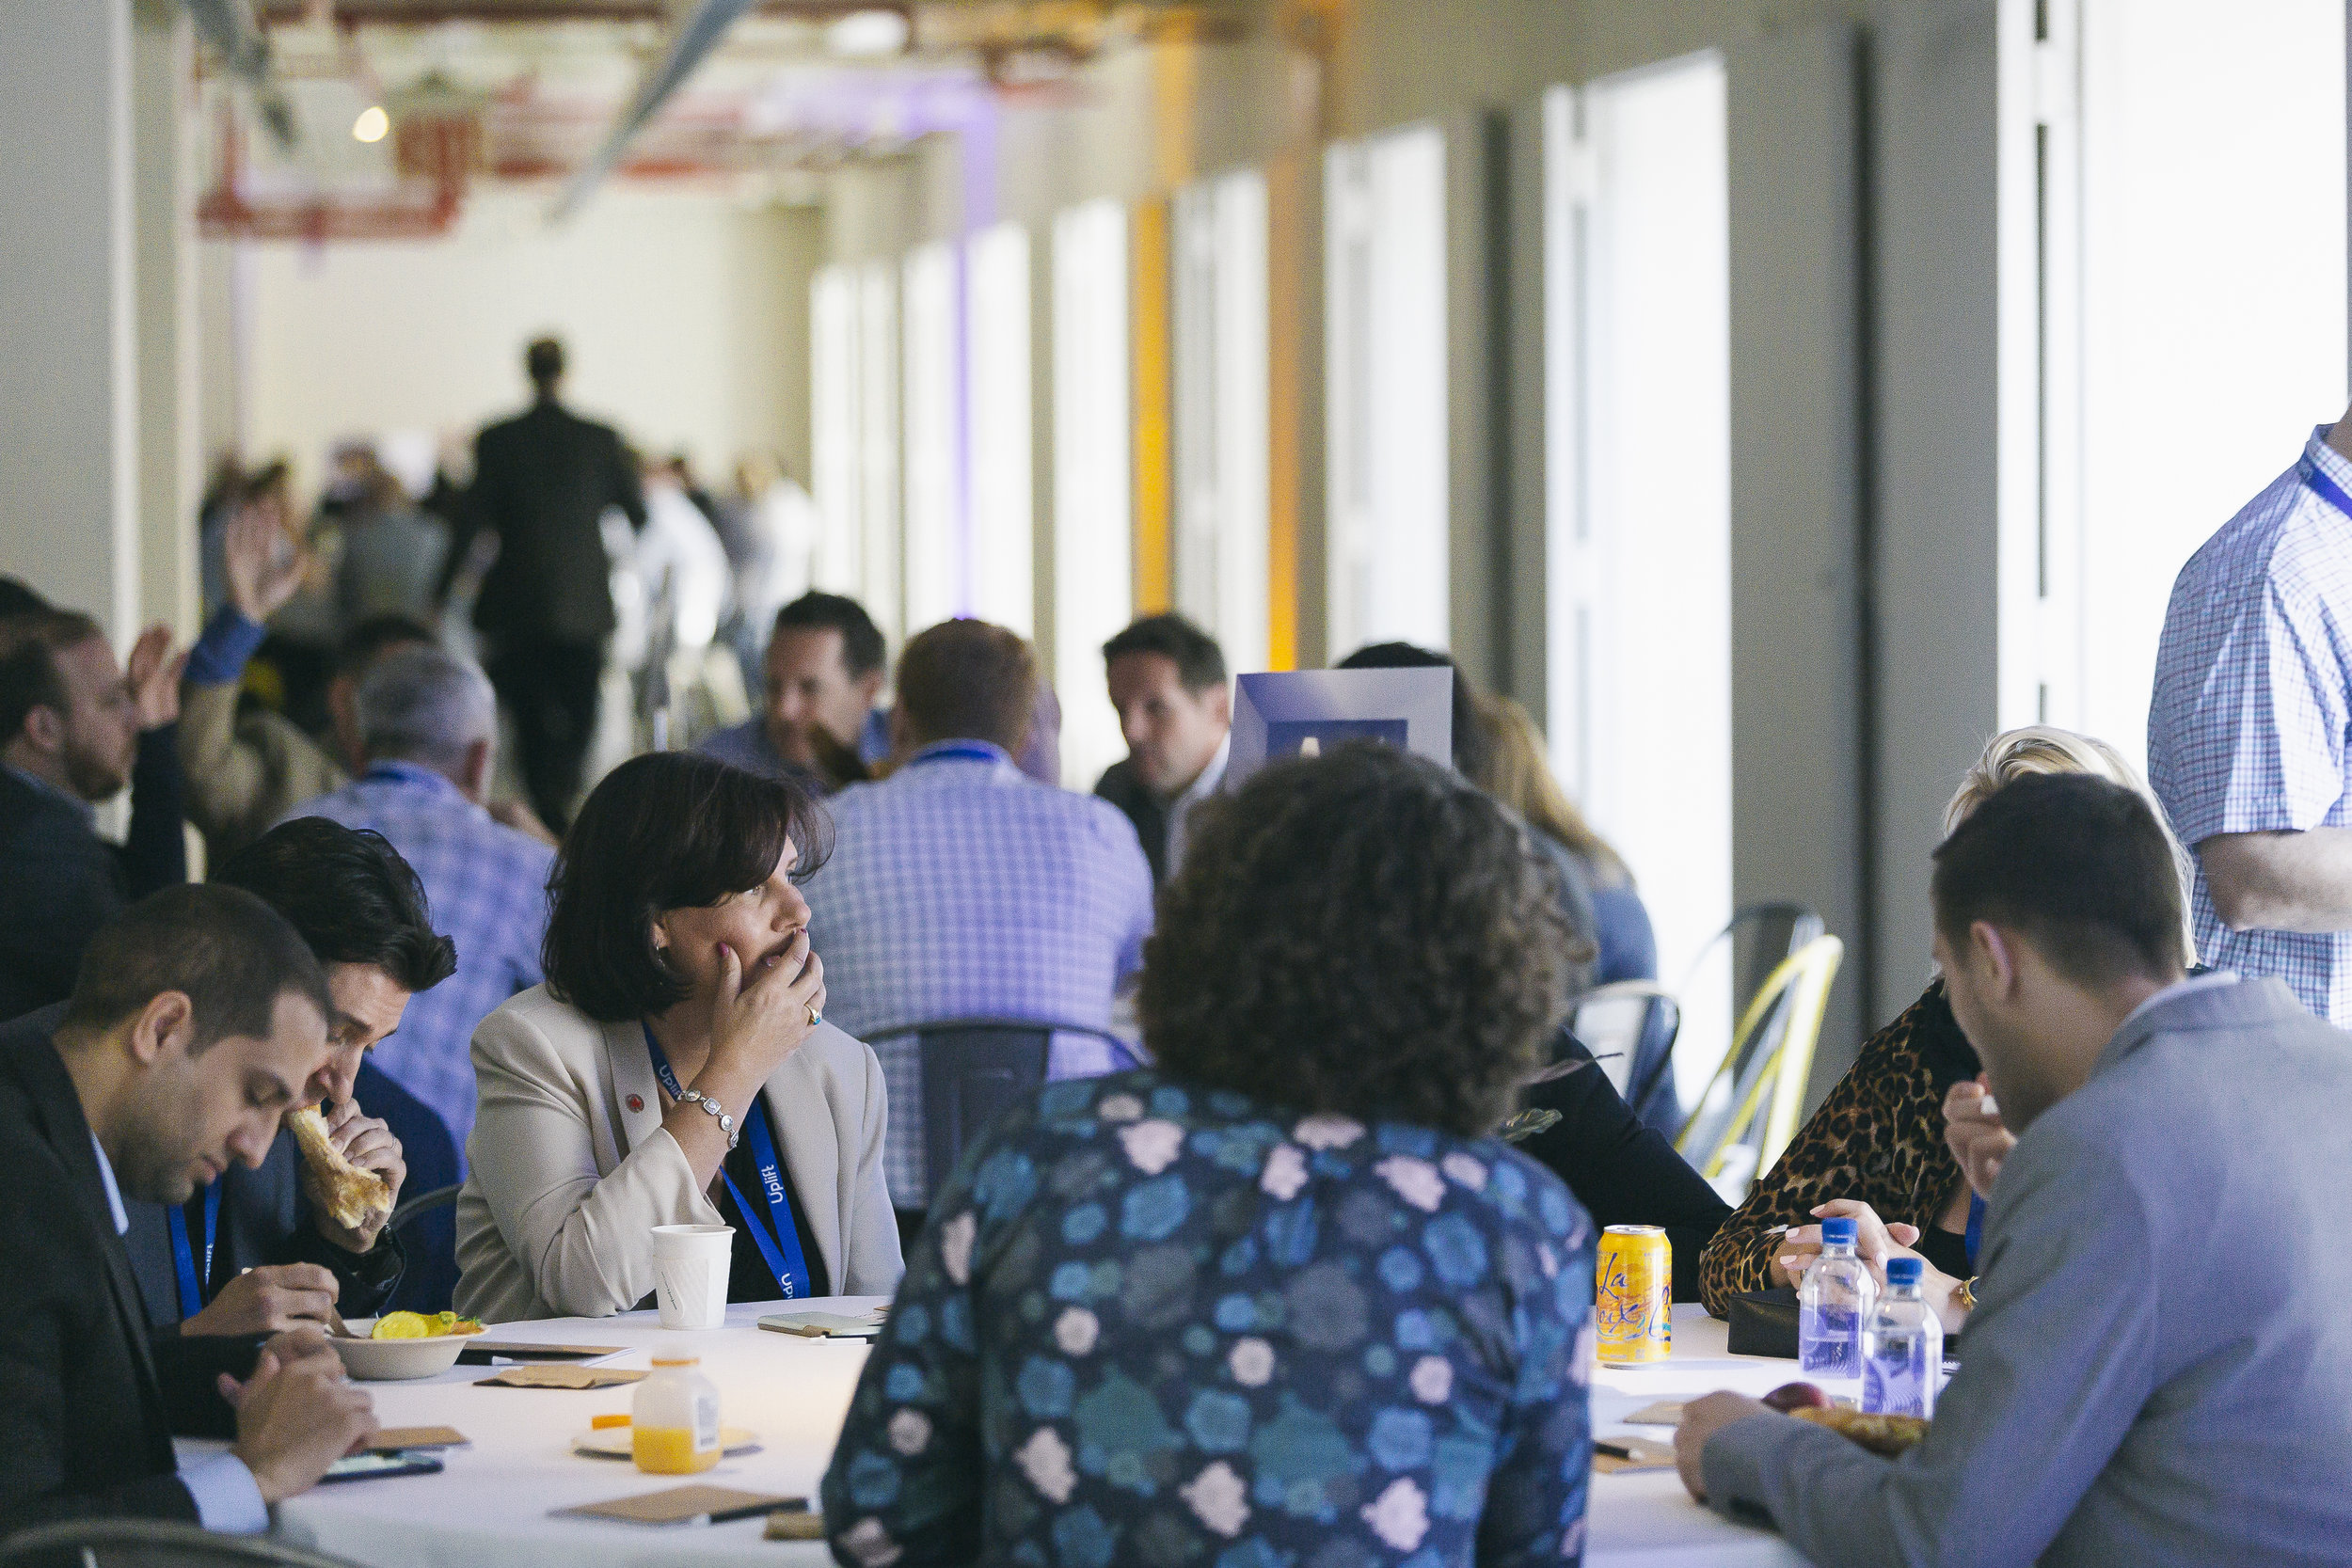 Roundtables in action at the 2019 Travel Disruption Summit at Penn Plaza Pavilion on May 22, 2019